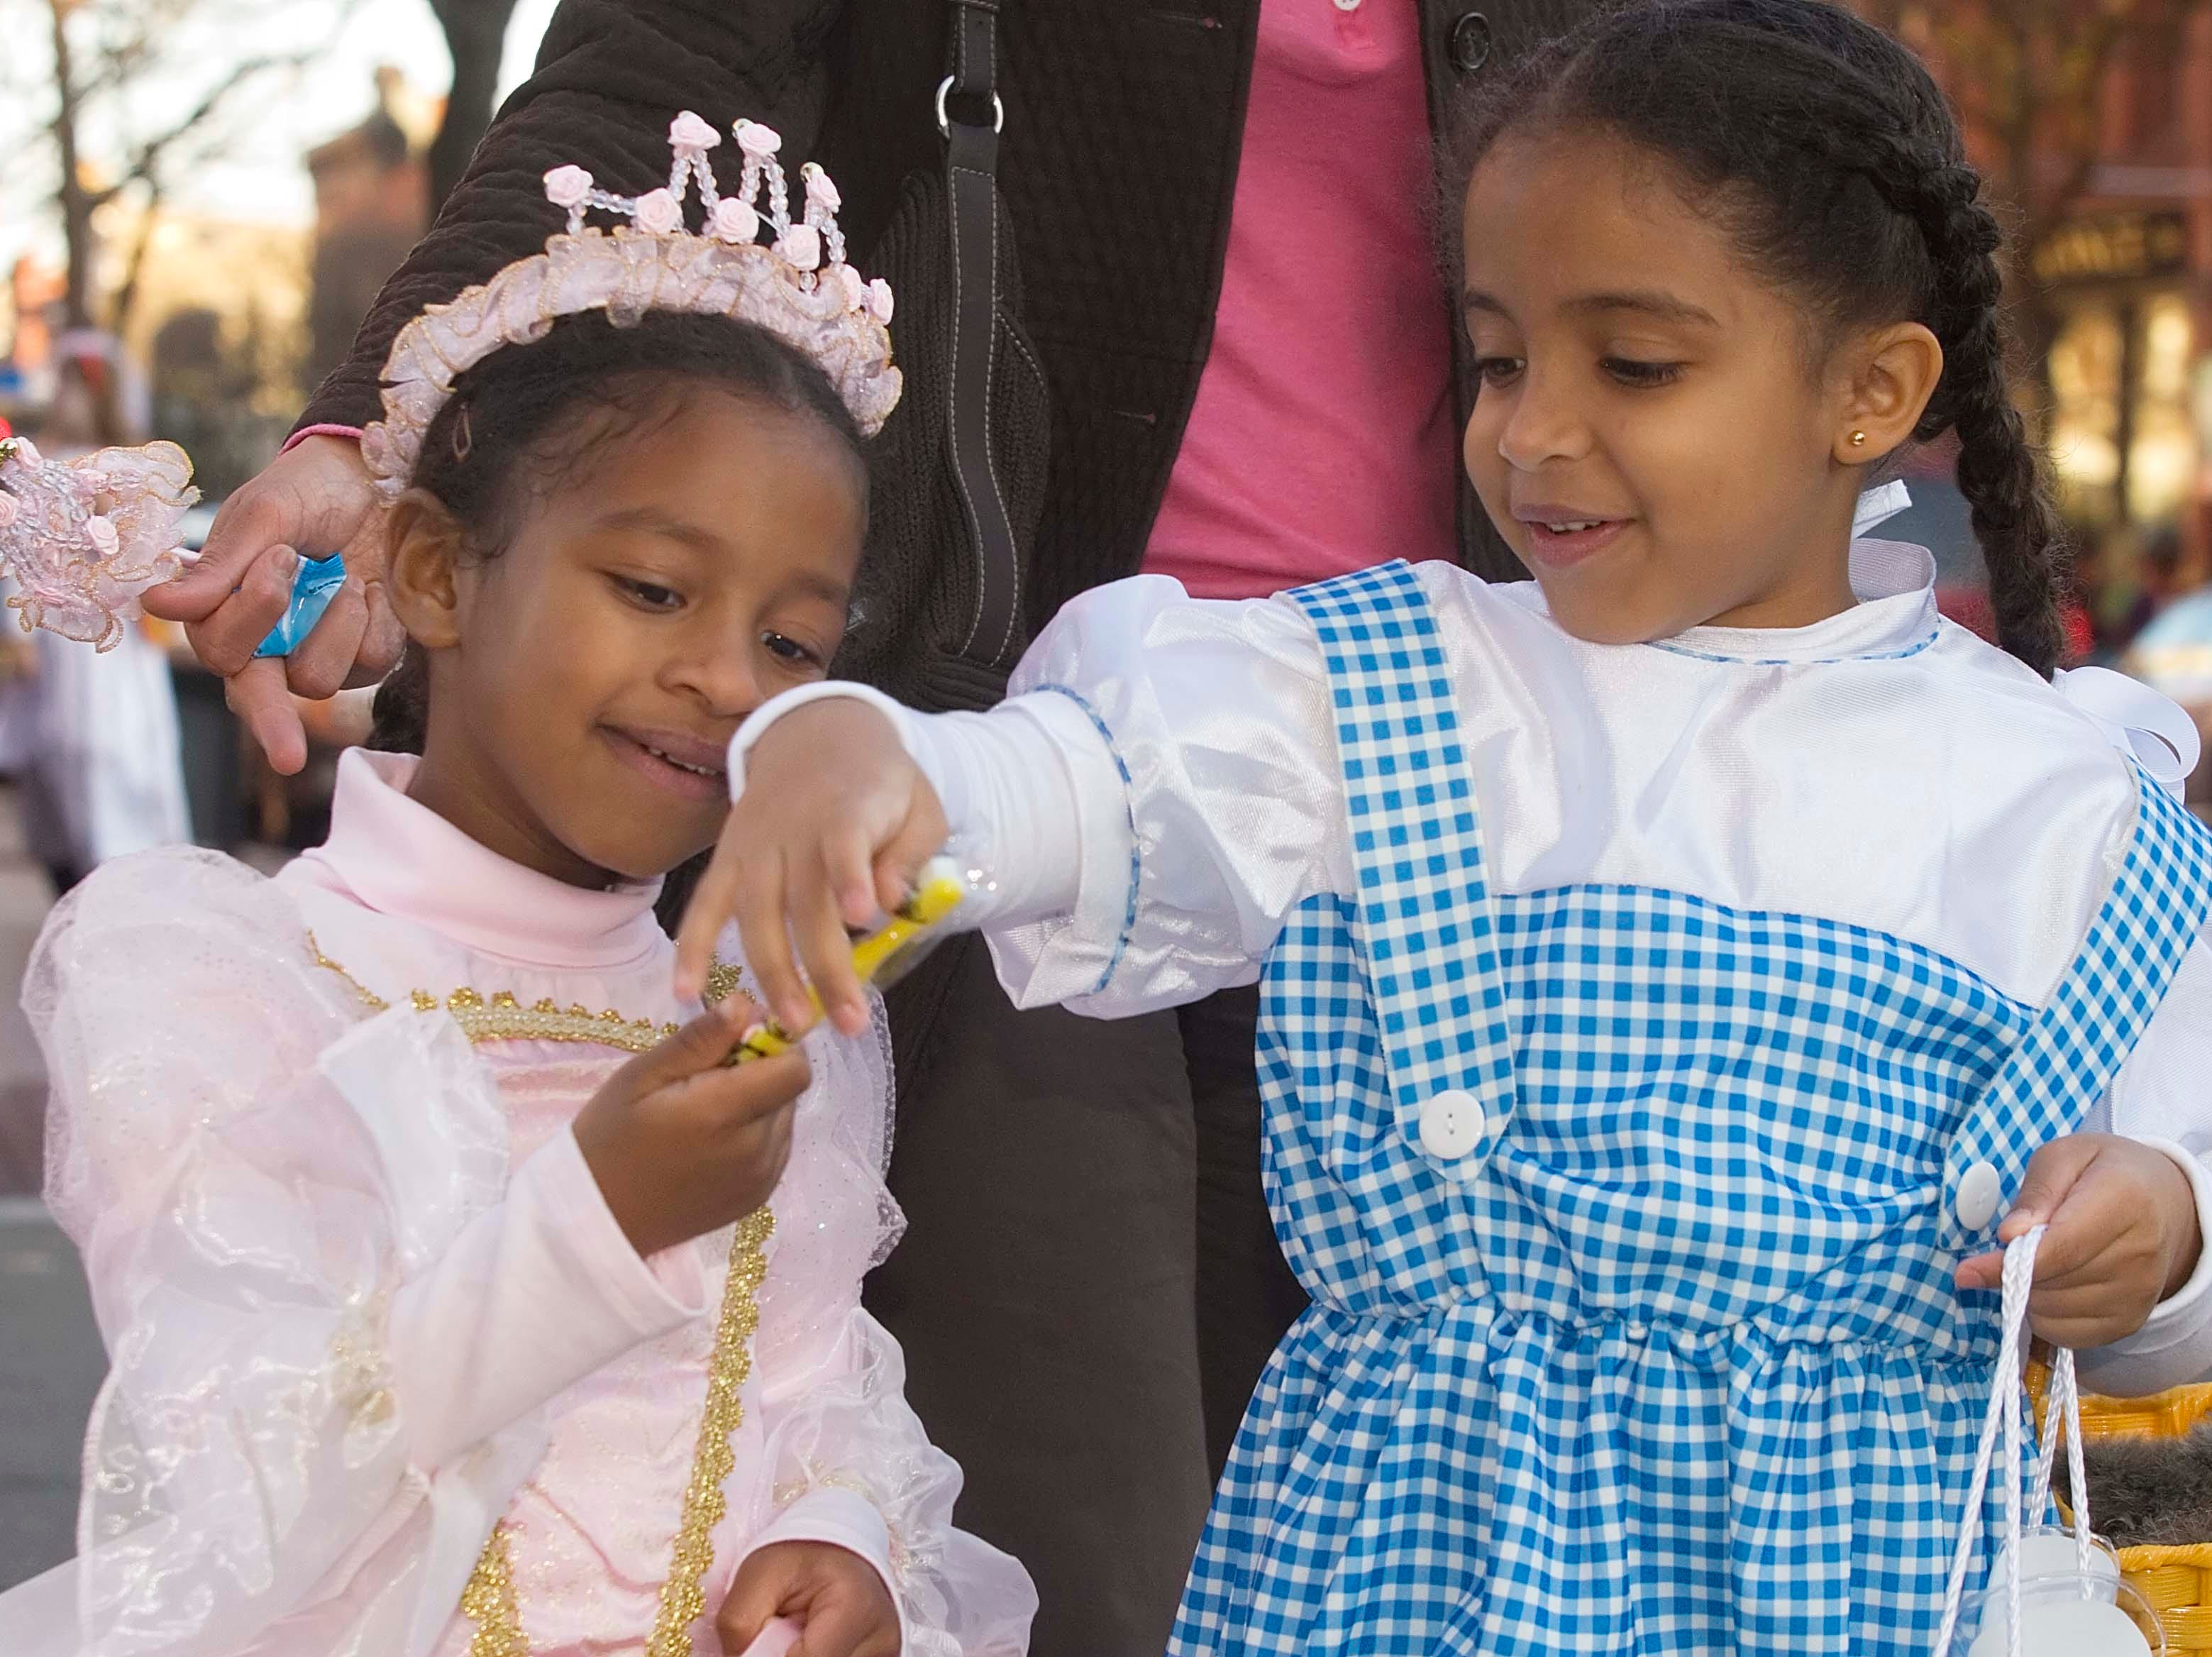 2008: Gabrielle Montgomery-Green, 5, of Big Flats left, and Raevin Shirley, 5, of Corning look at a toothbrush they Friday during trick-or-treating on Market Street in Corning.